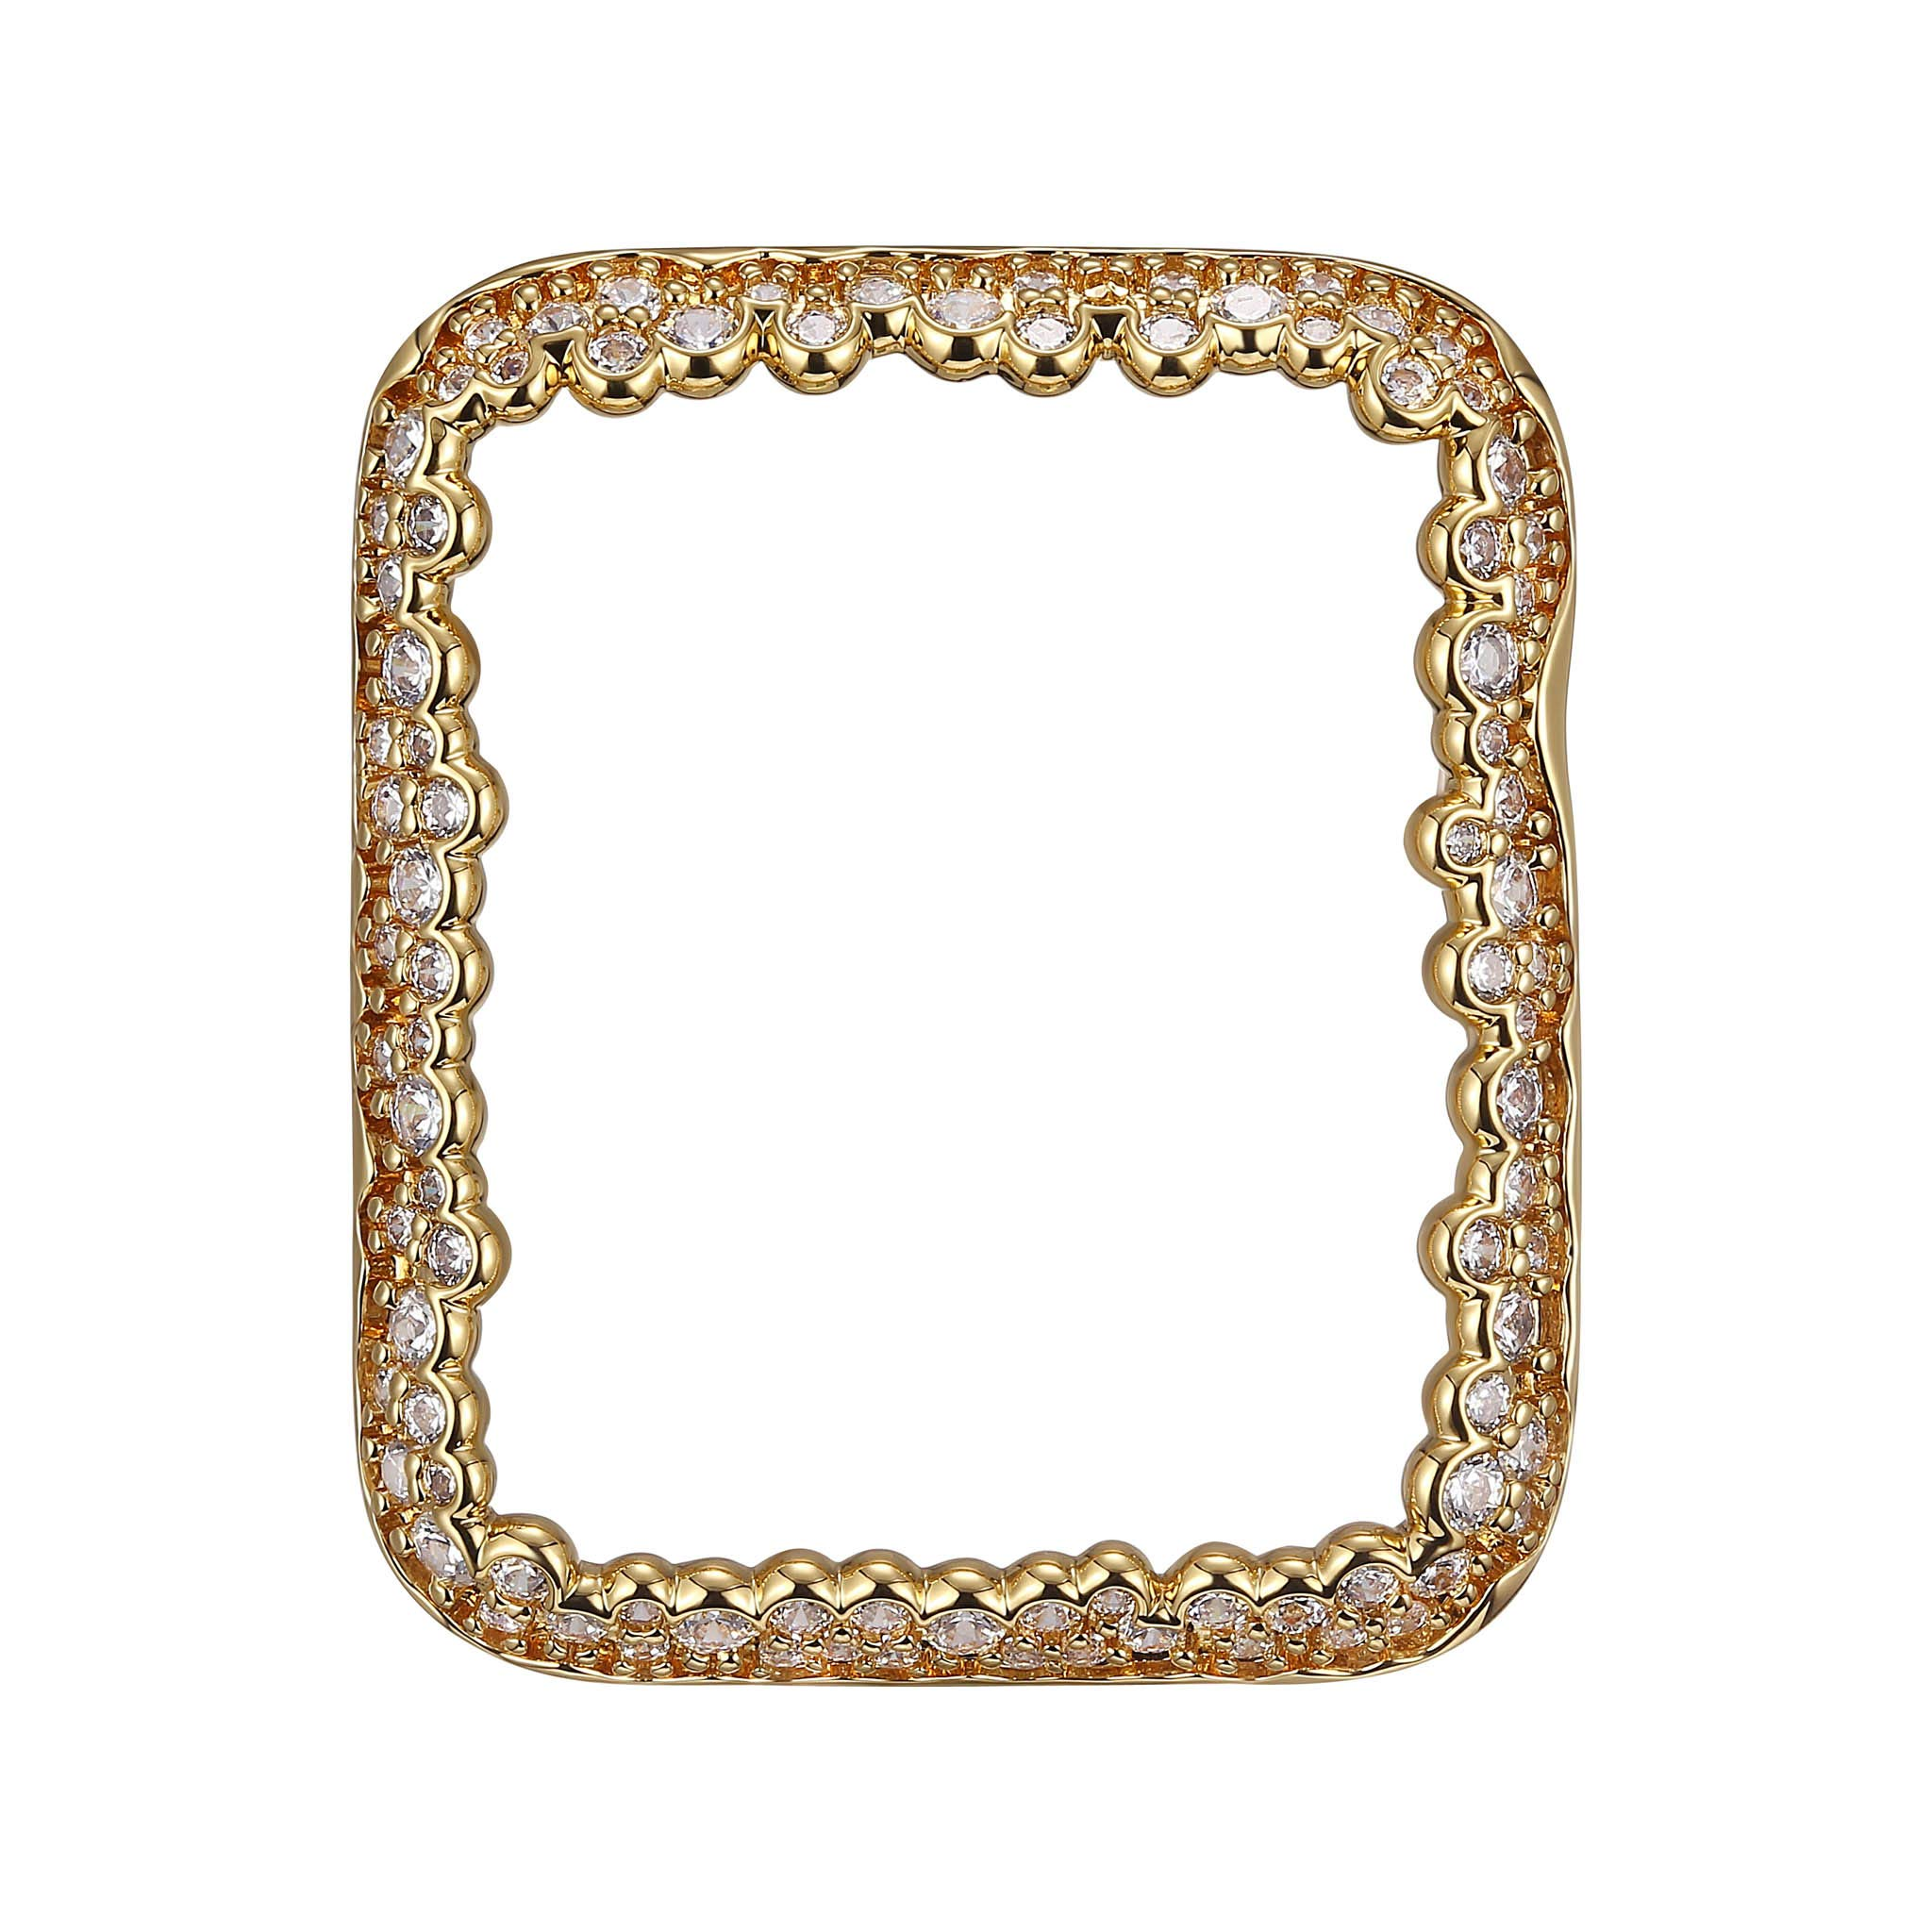 18K Yellow Gold Plated Champagne Bubbles Jewelry-Style Apple Watch Case with Swarovski Zirconia CZ Border - Small (Fits 38mm iWatch)